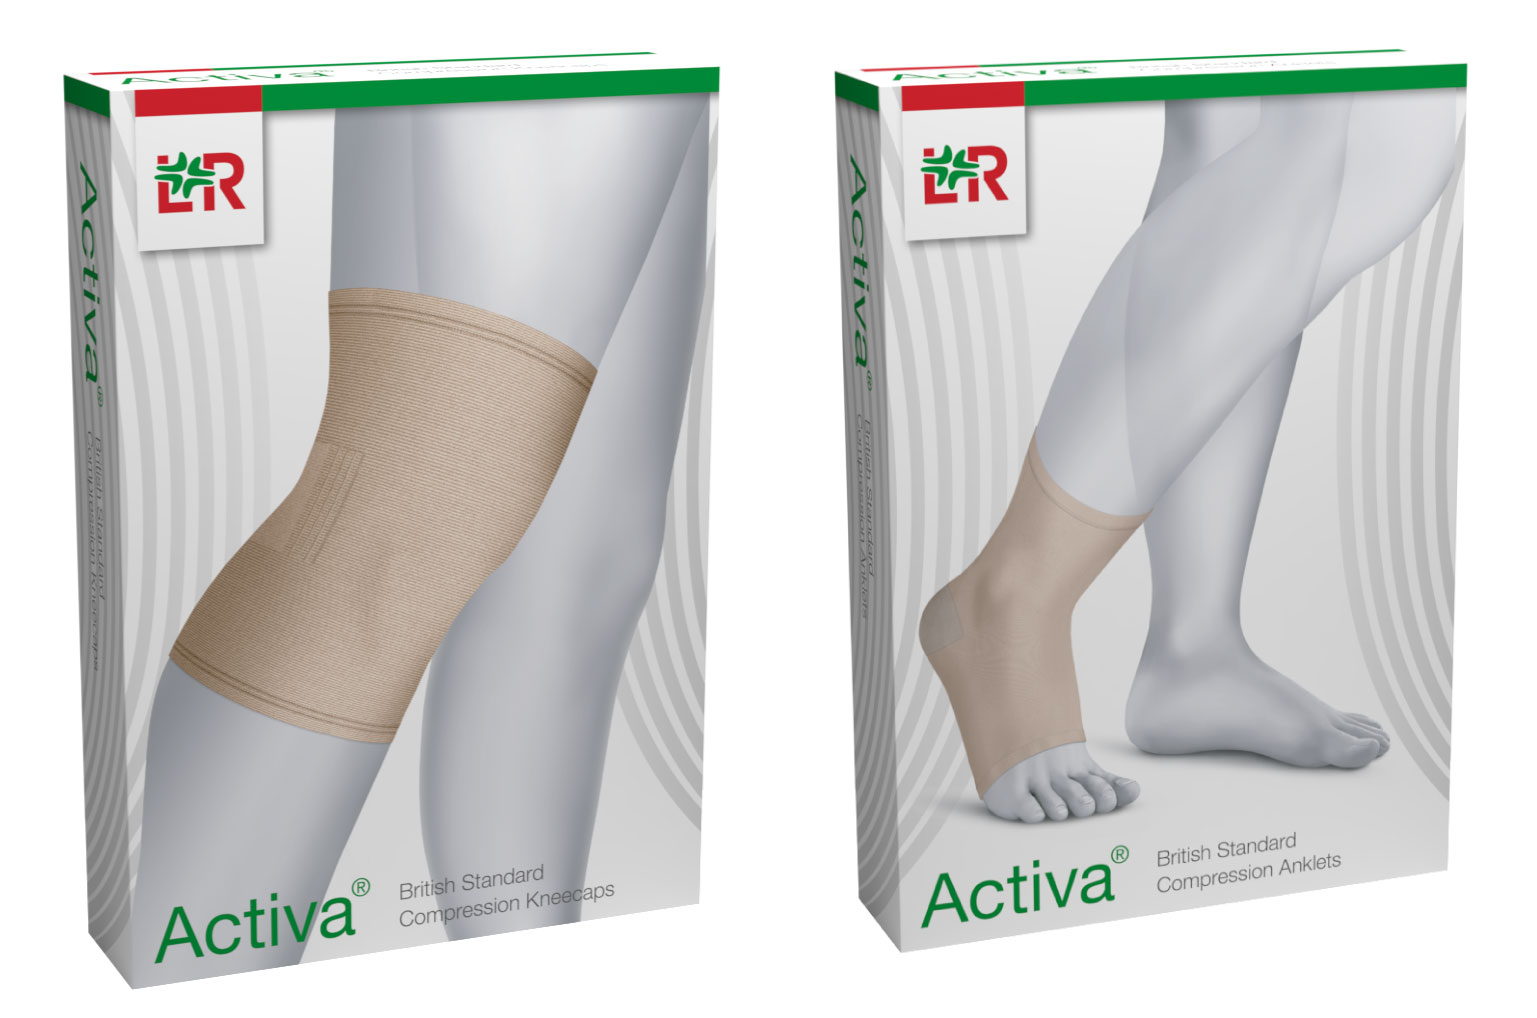 Activa Anklets and Kneecaps